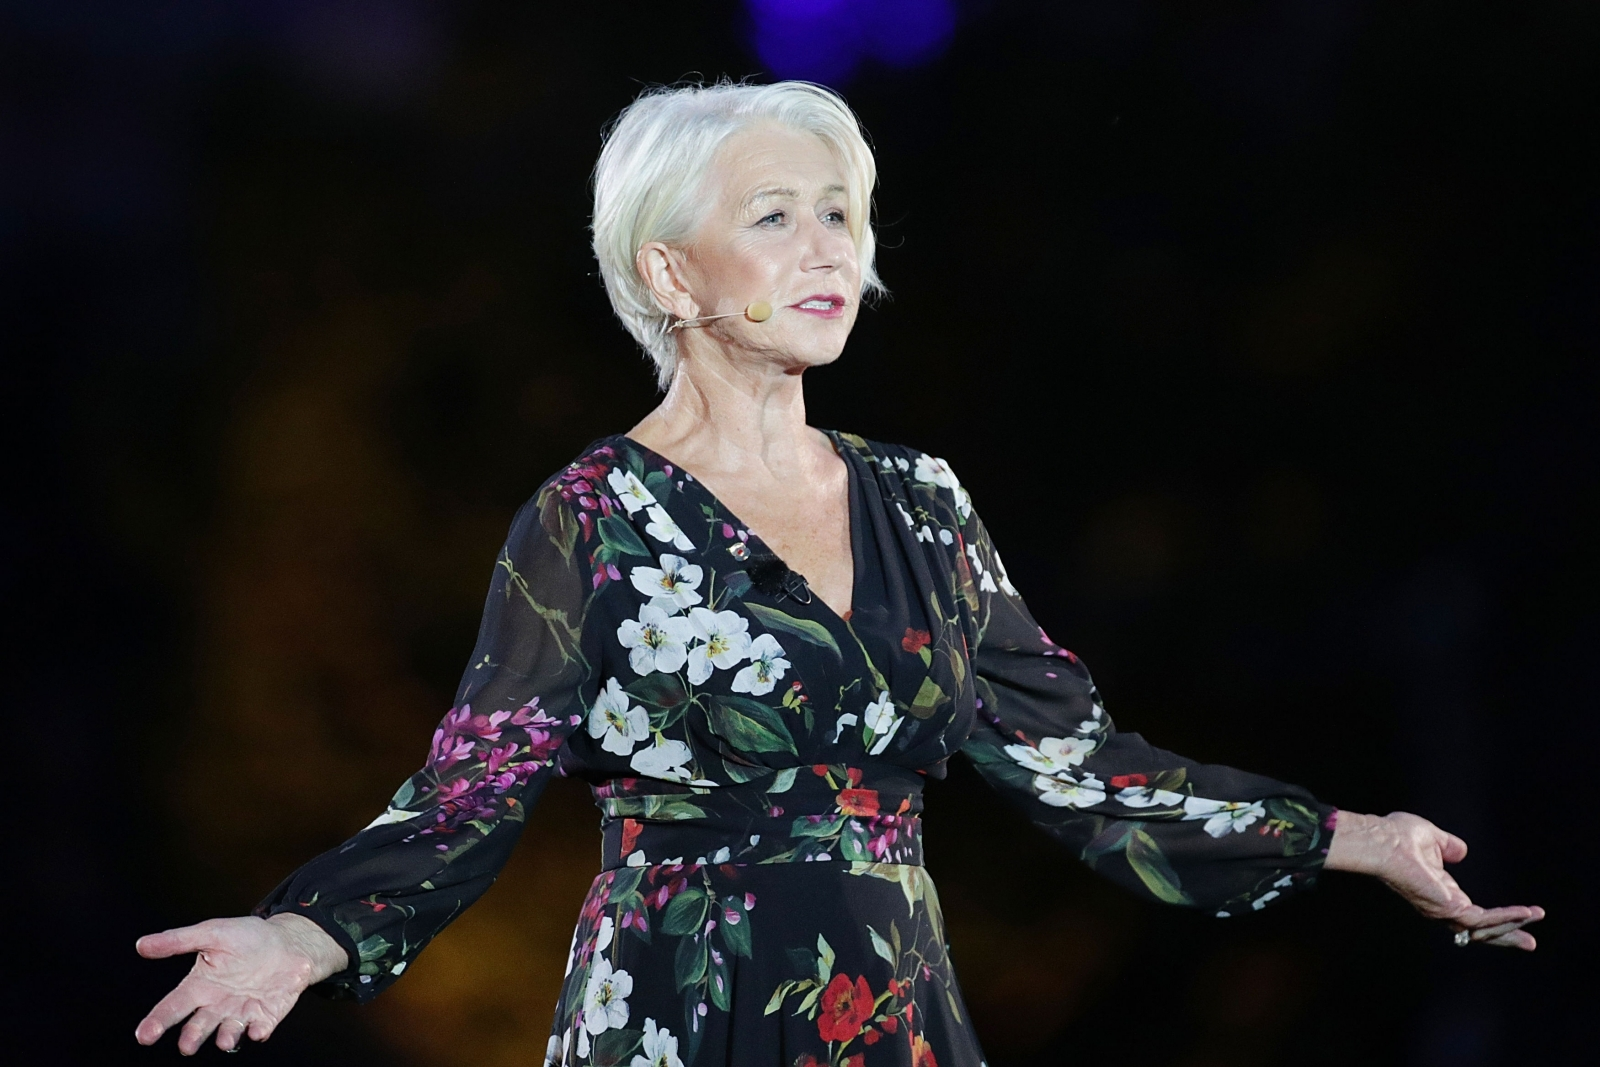 L'Oréal moisturiser not worth it, says Helen Mirren